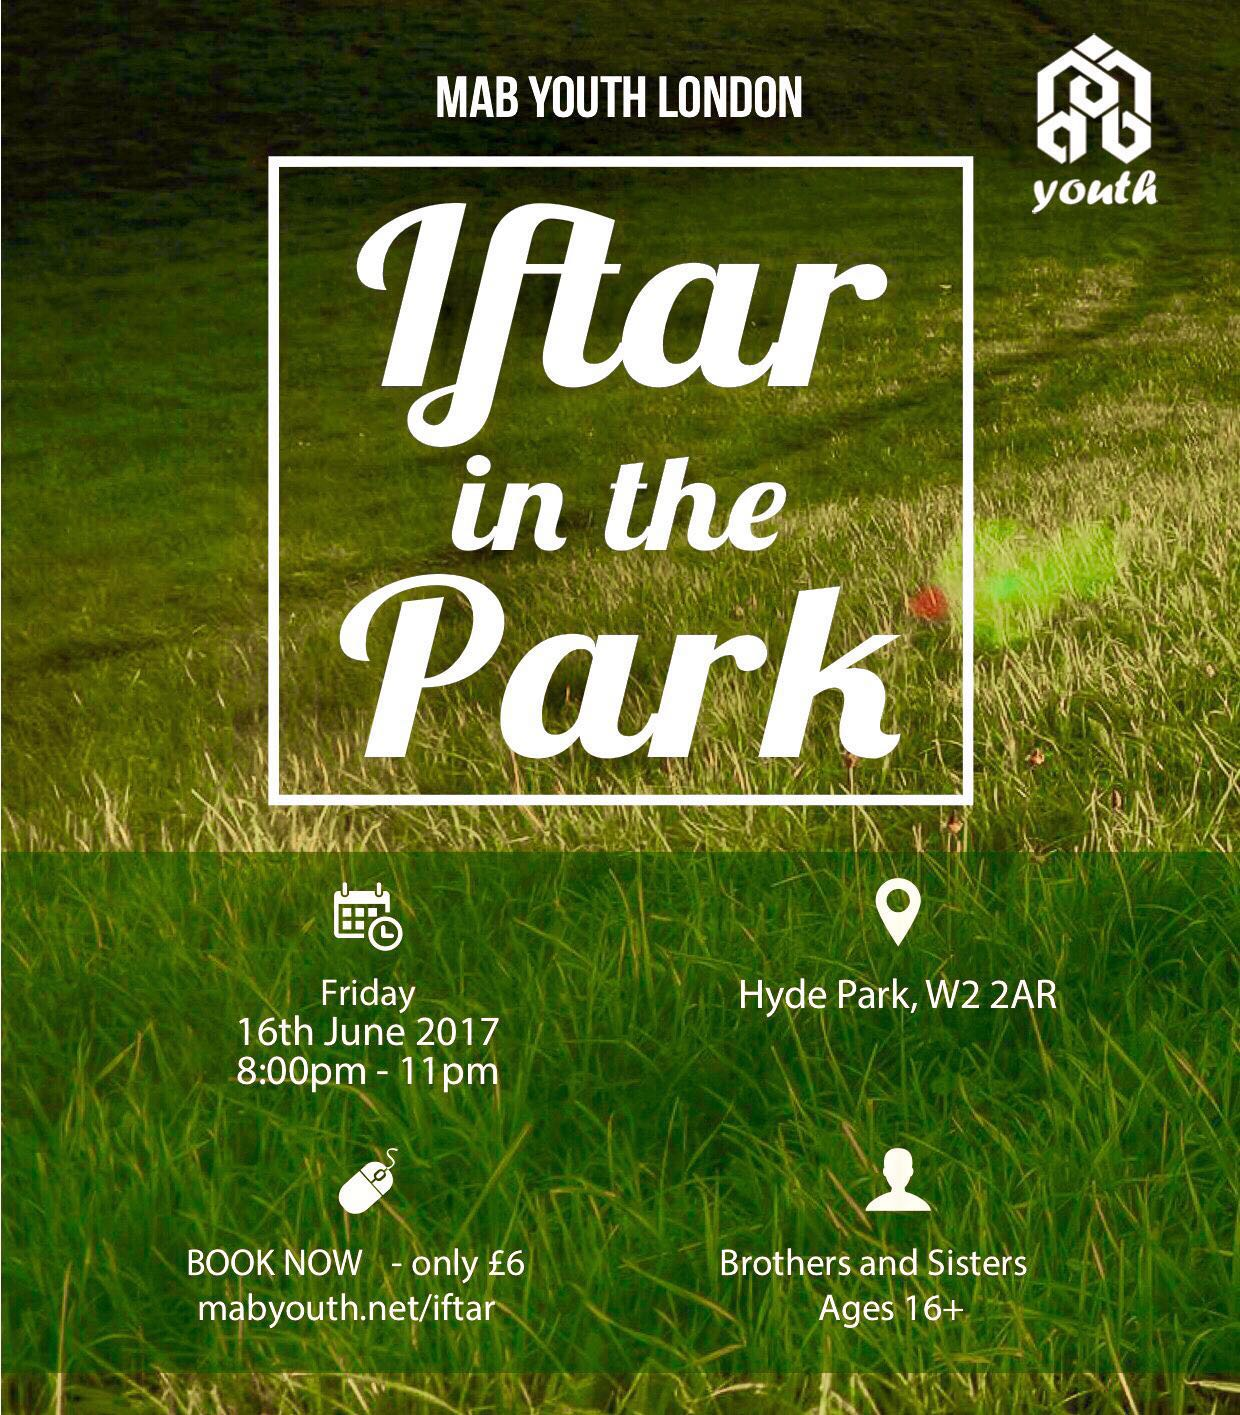 **Iftar in the Park**